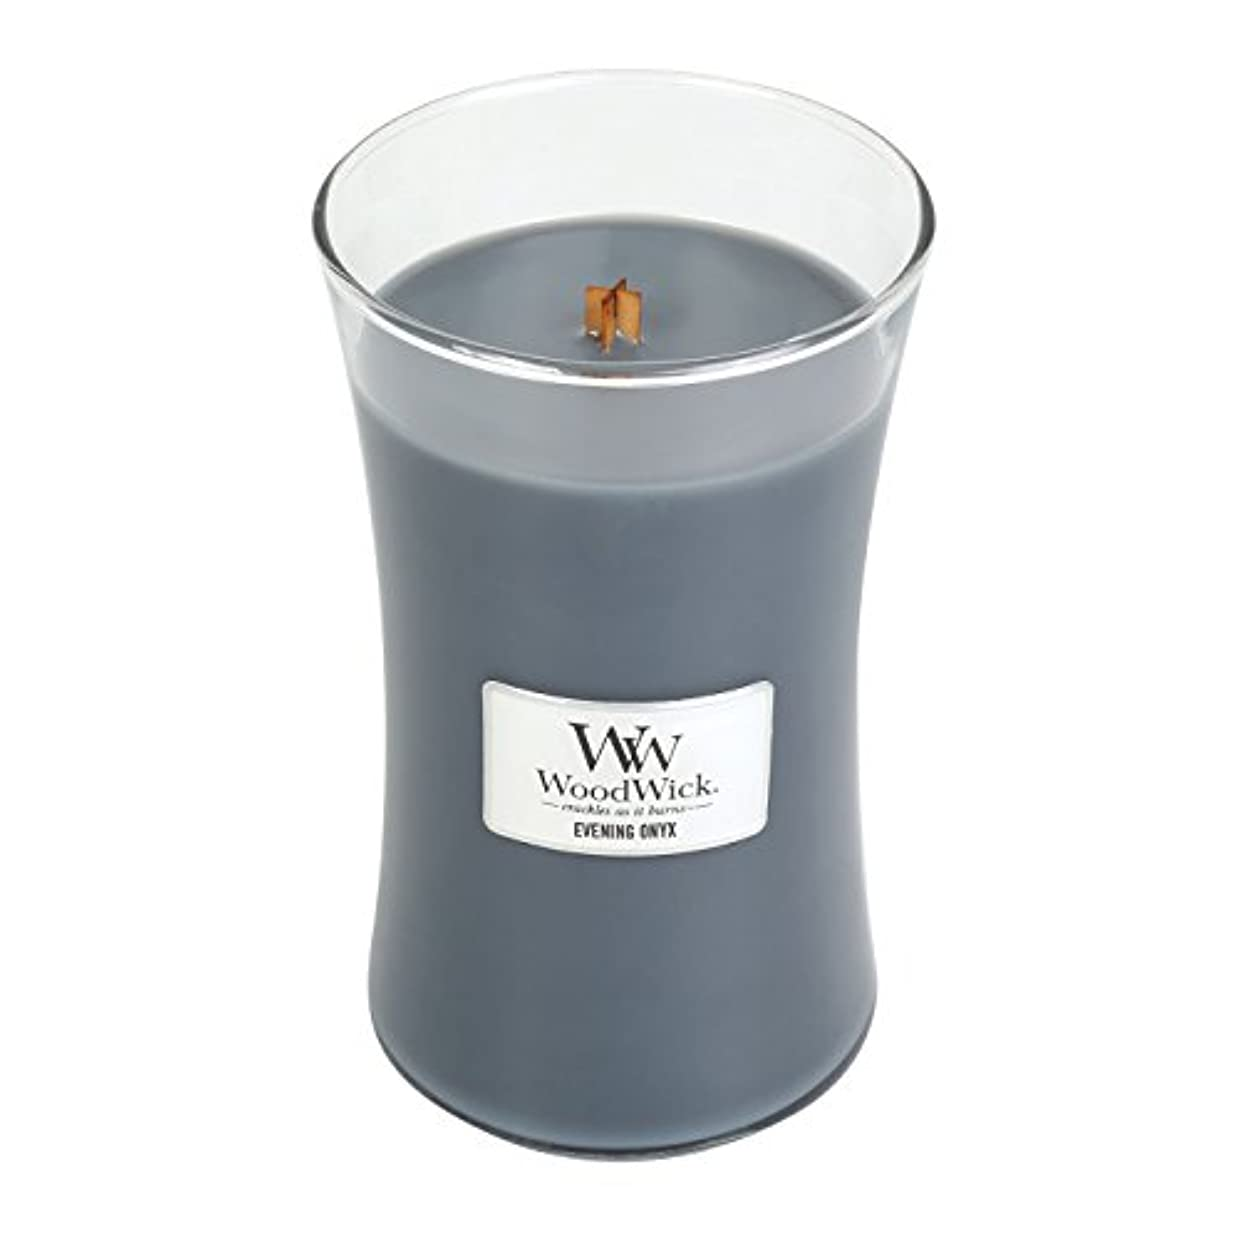 膿瘍ヒゲクジラすすり泣きWoodWick EVENING ONYX, Highly Scented Candle, Classic Hourglass Jar, Large 18cm, 640ml